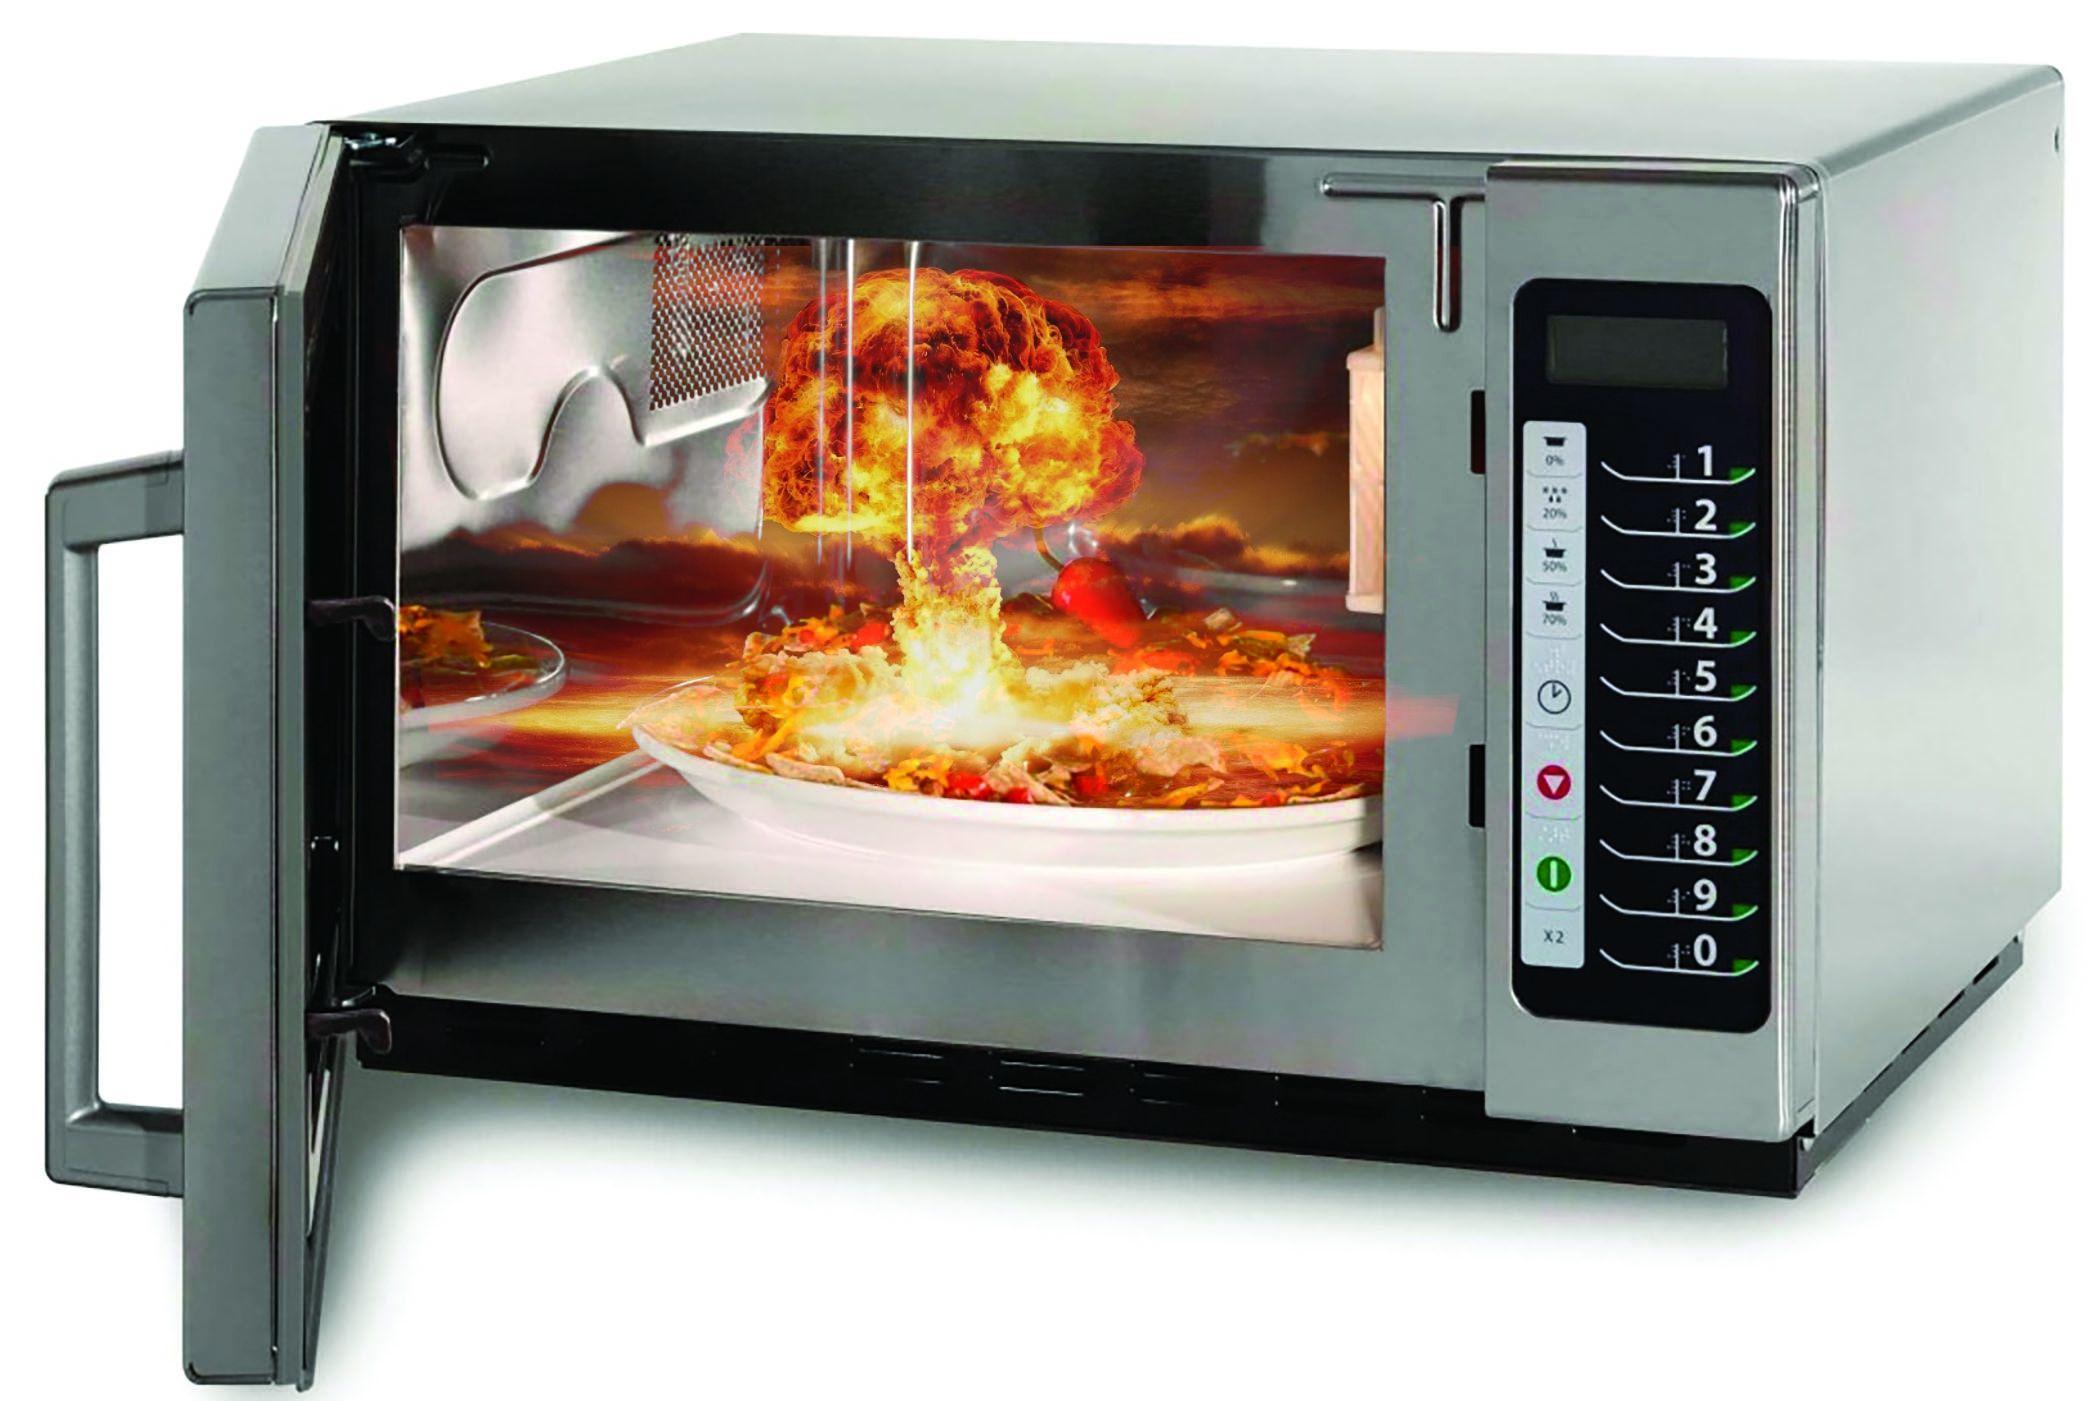 microwave-oven-5